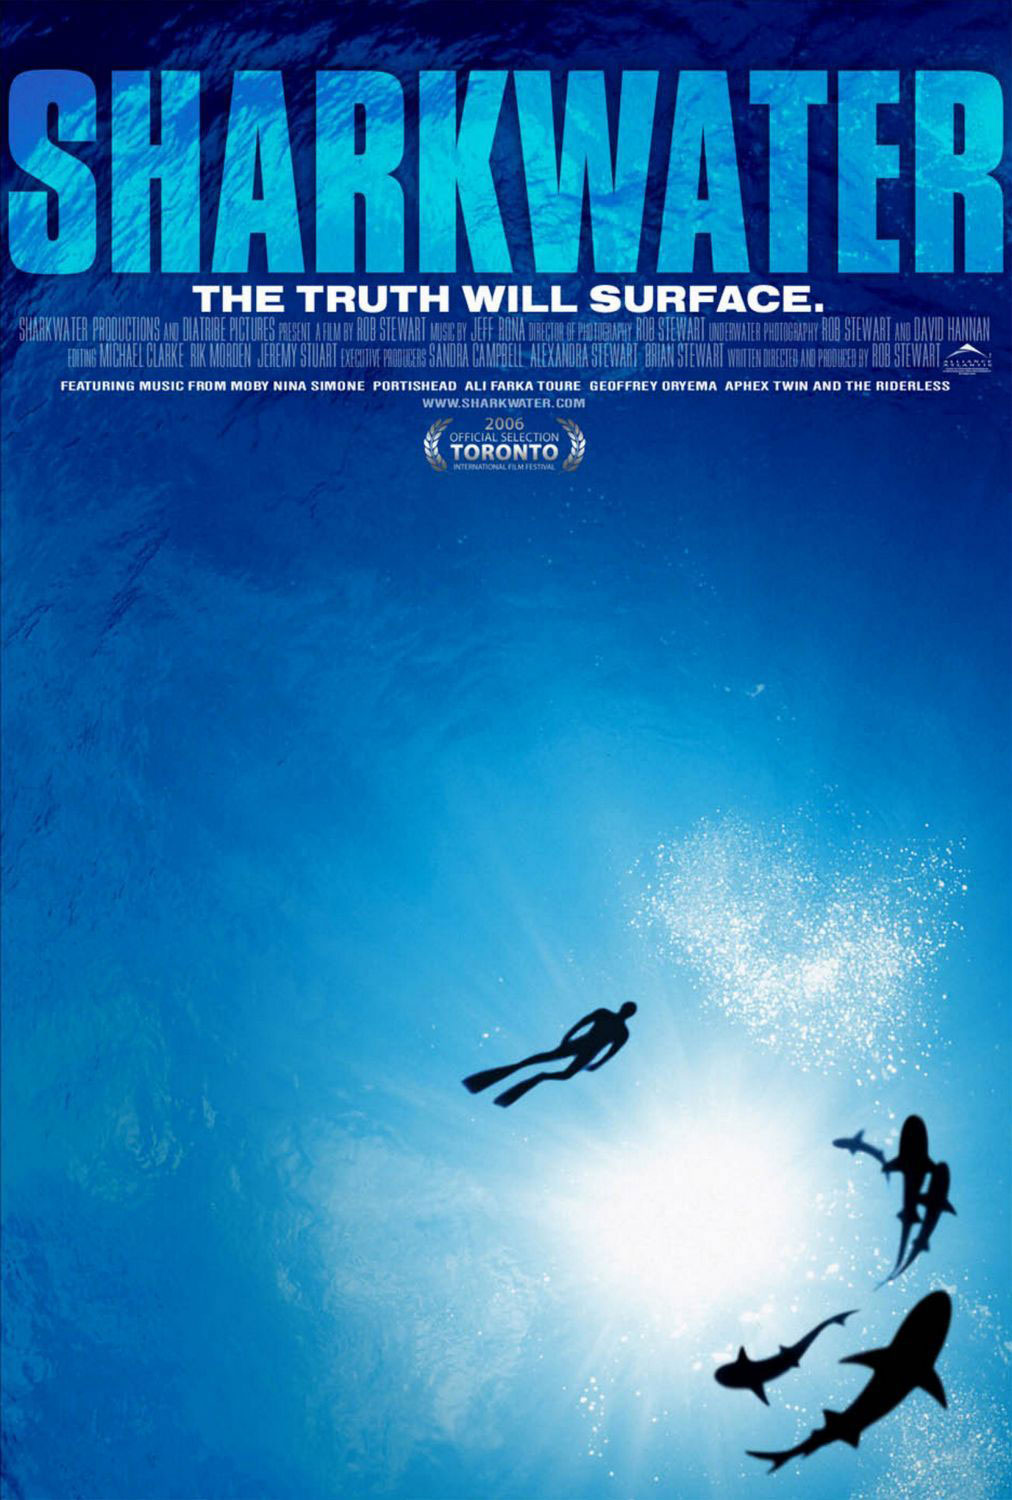 Movie poster for Sharkwater directed by Rob Stewart